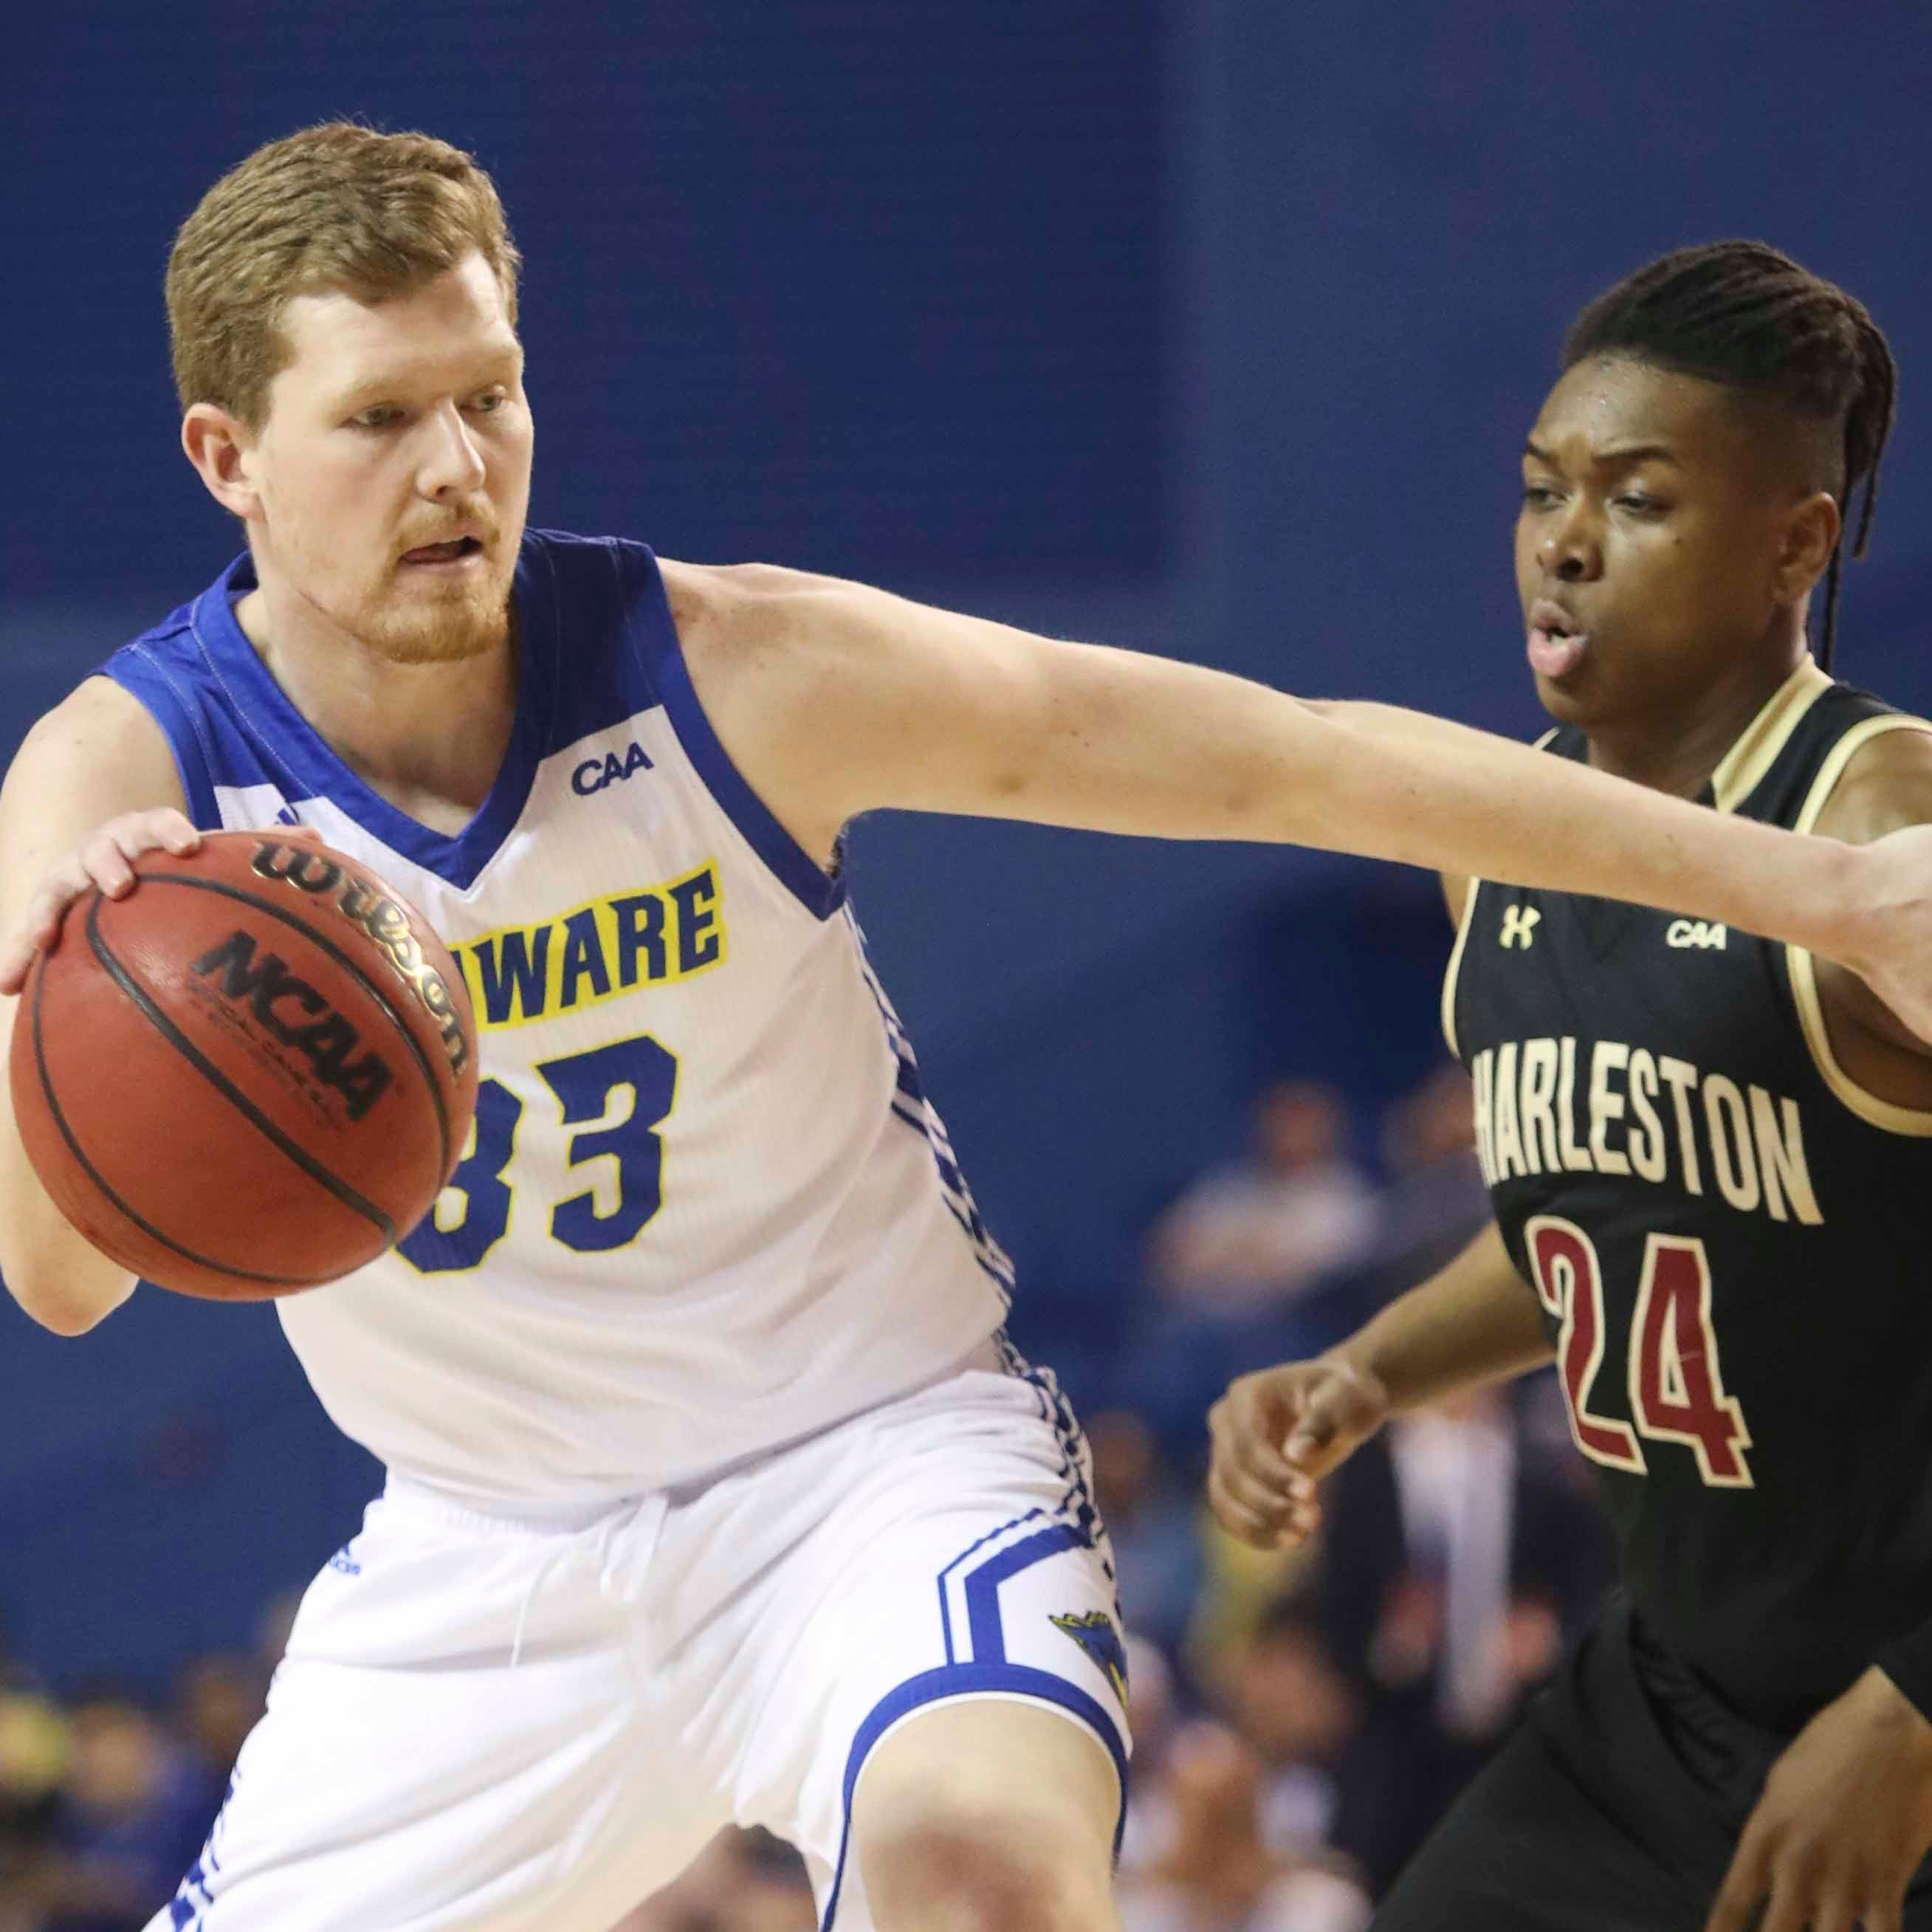 Delaware rallies to beat William & Mary, reach CAA semifinals